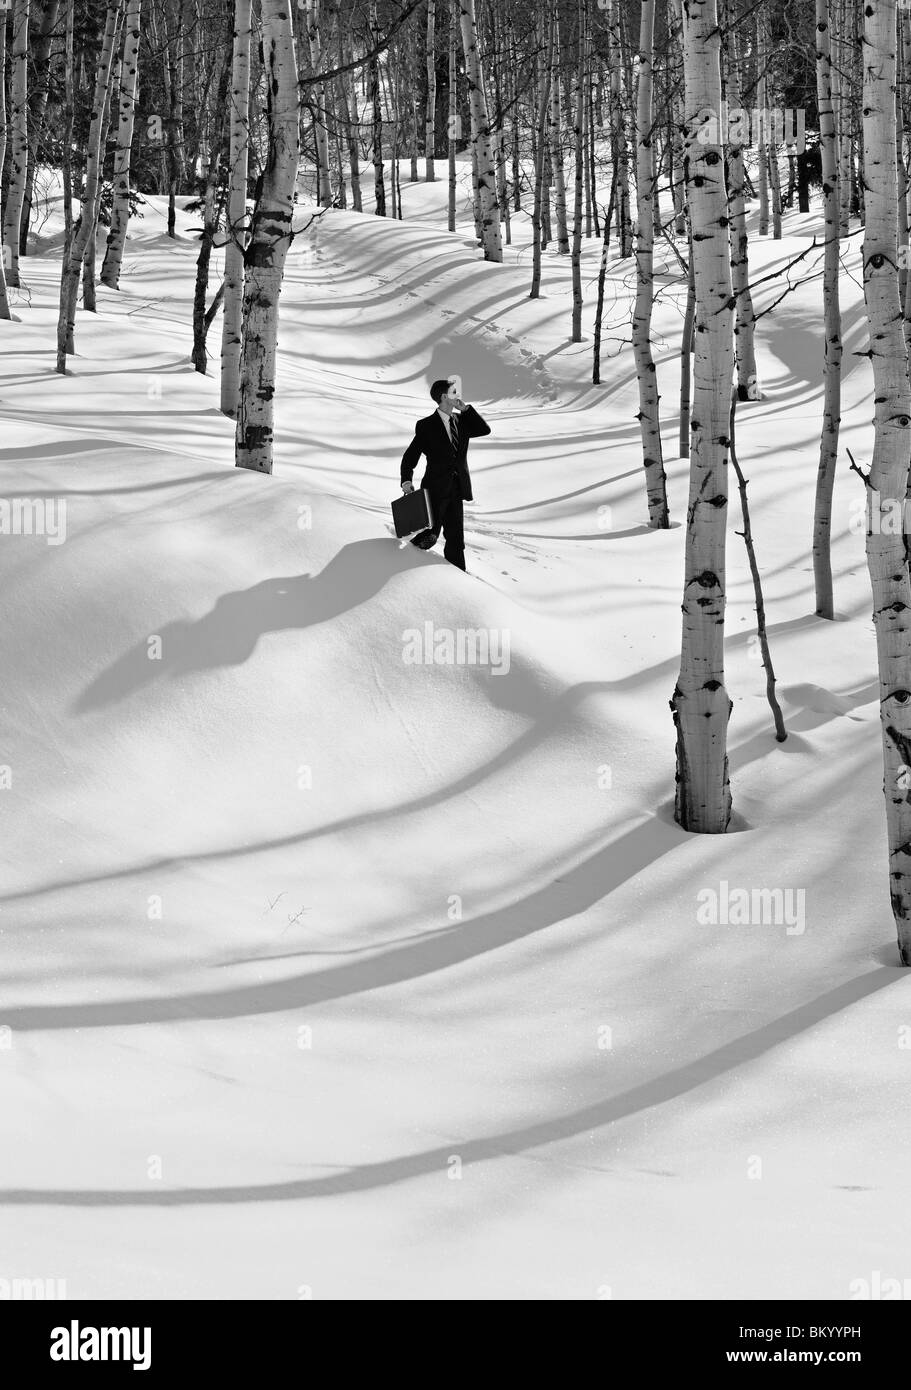 black and white monochrome image of a businessman carrying briefcase and cell phone lost in the snow and trees - Stock Image